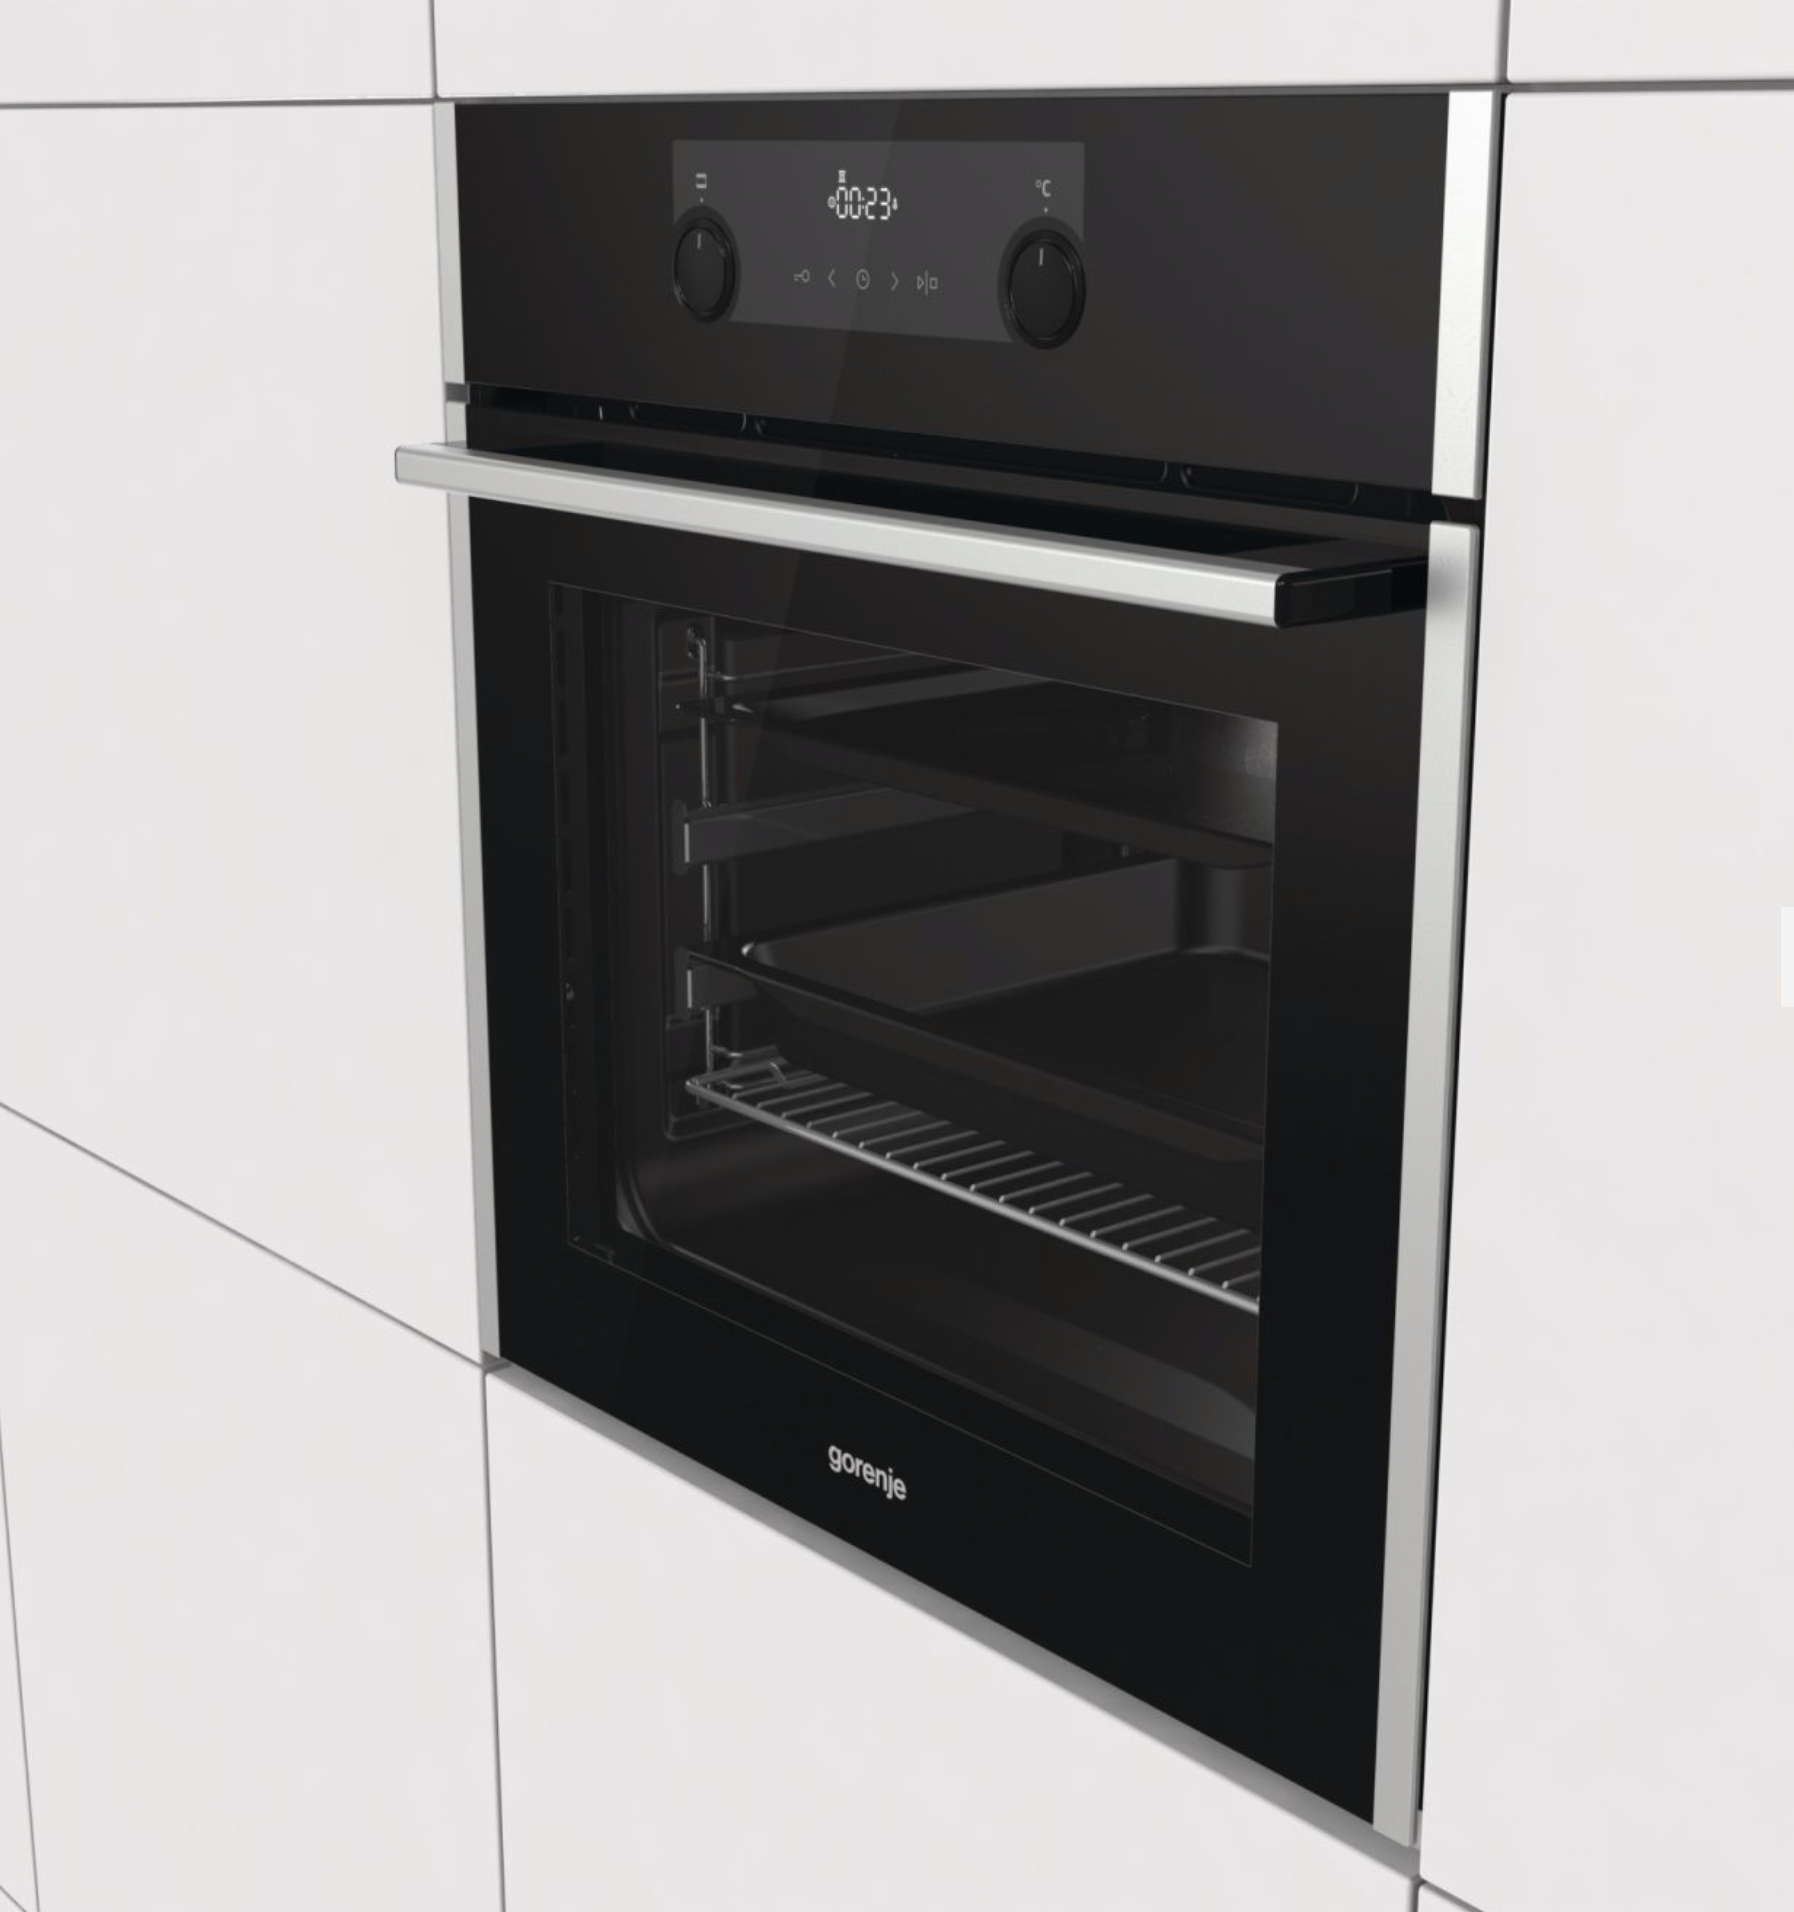 gorenje backofen set black pepper f5 bestehend aus bo737e30xg it640bx backofen set 39 s